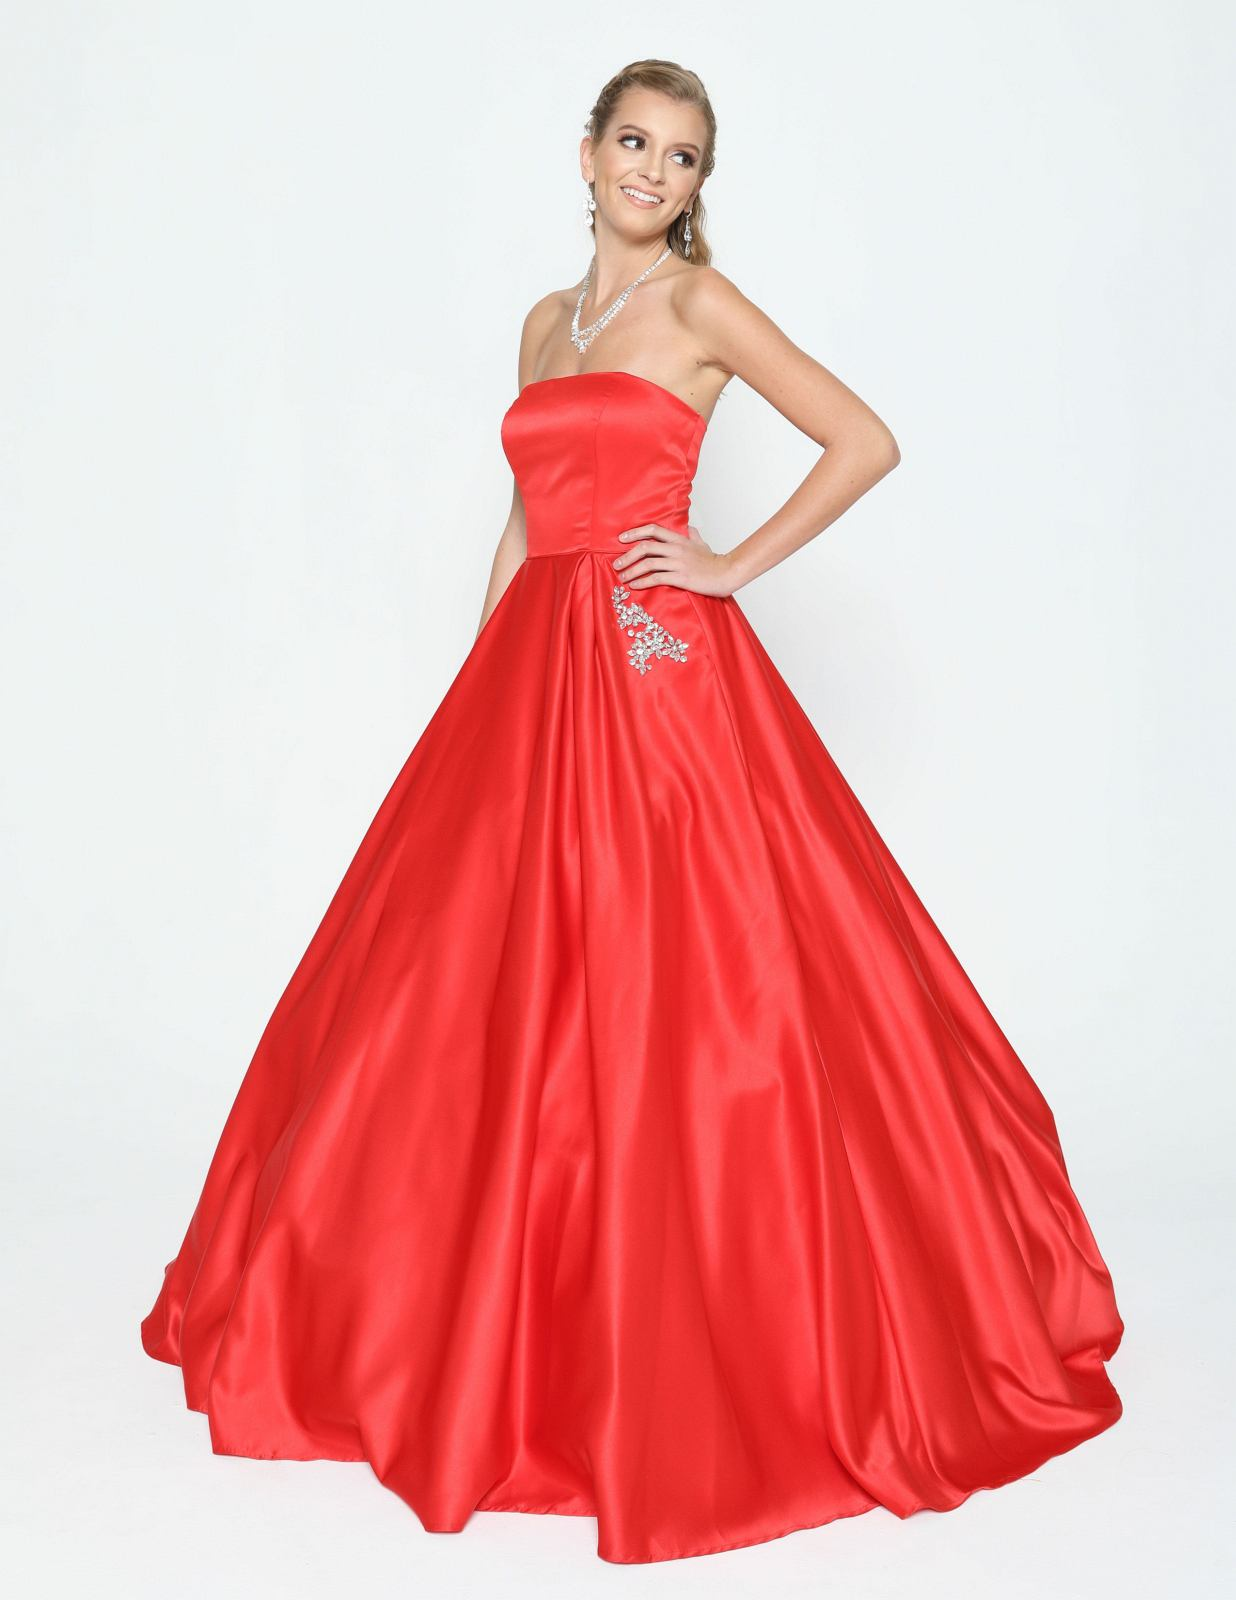 658cb1787ac0 ... Navy Blue Strapless Prom Gown with Beaded Pockets Red Strapless Prom  Gown with Beaded Pockets ...